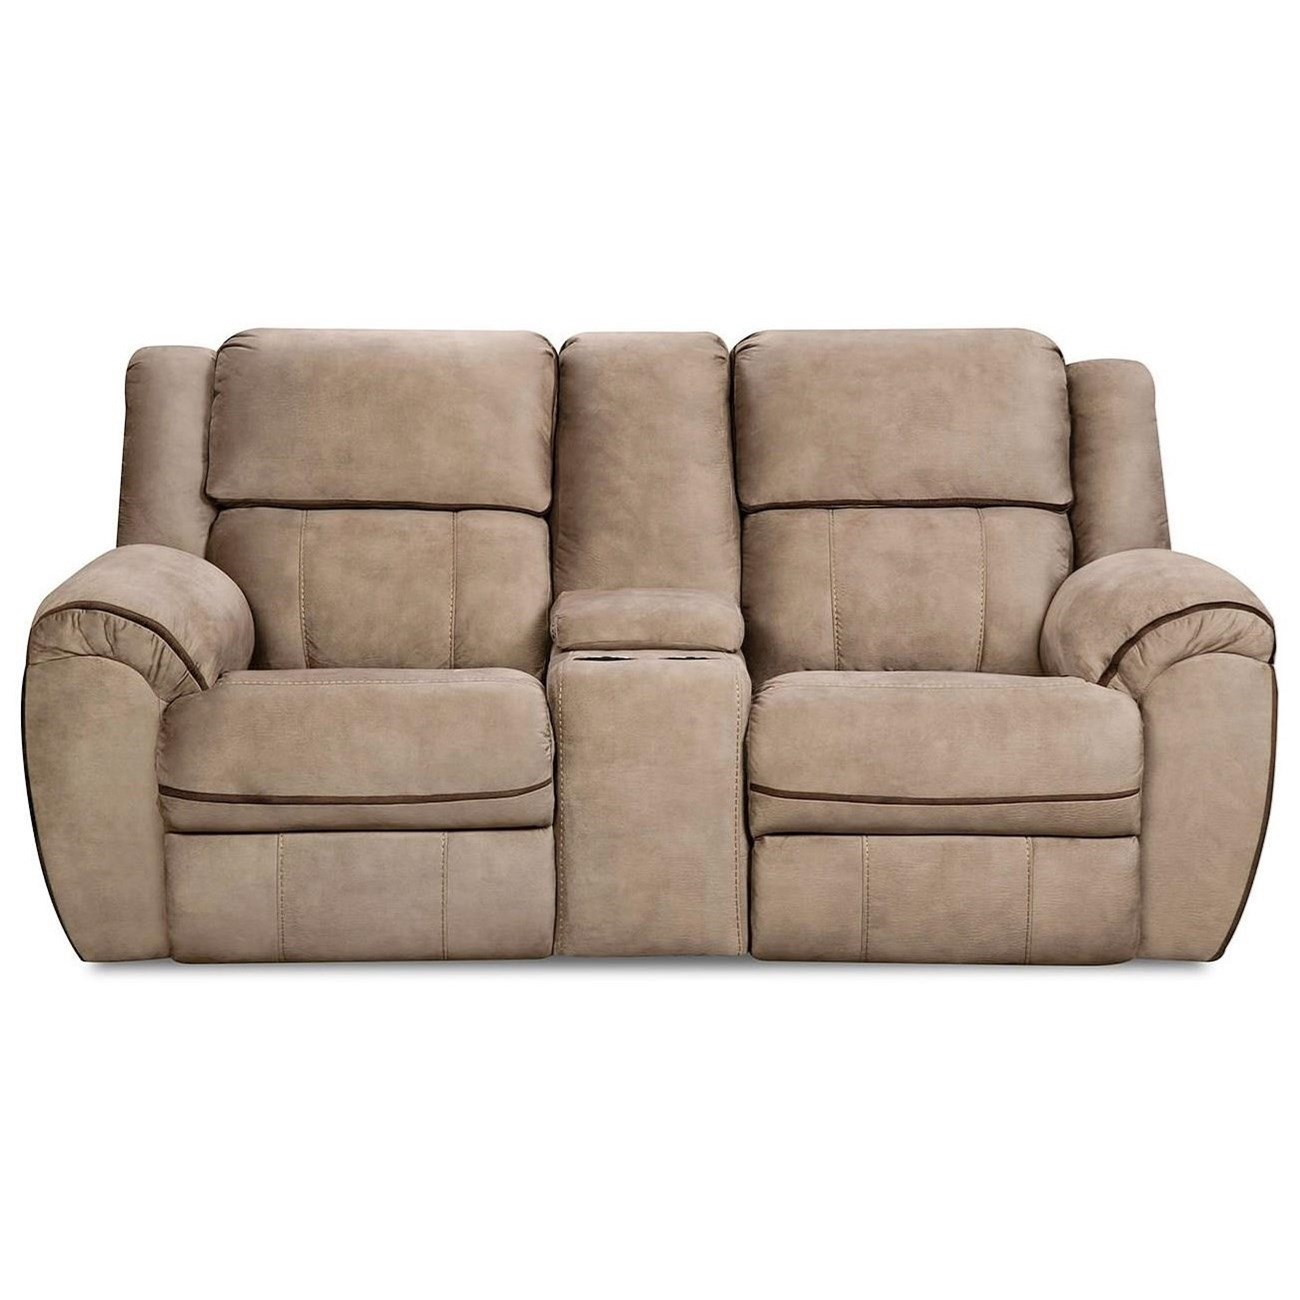 50436BR Reclining Console Loveseat by United Furniture Industries at Bullard Furniture